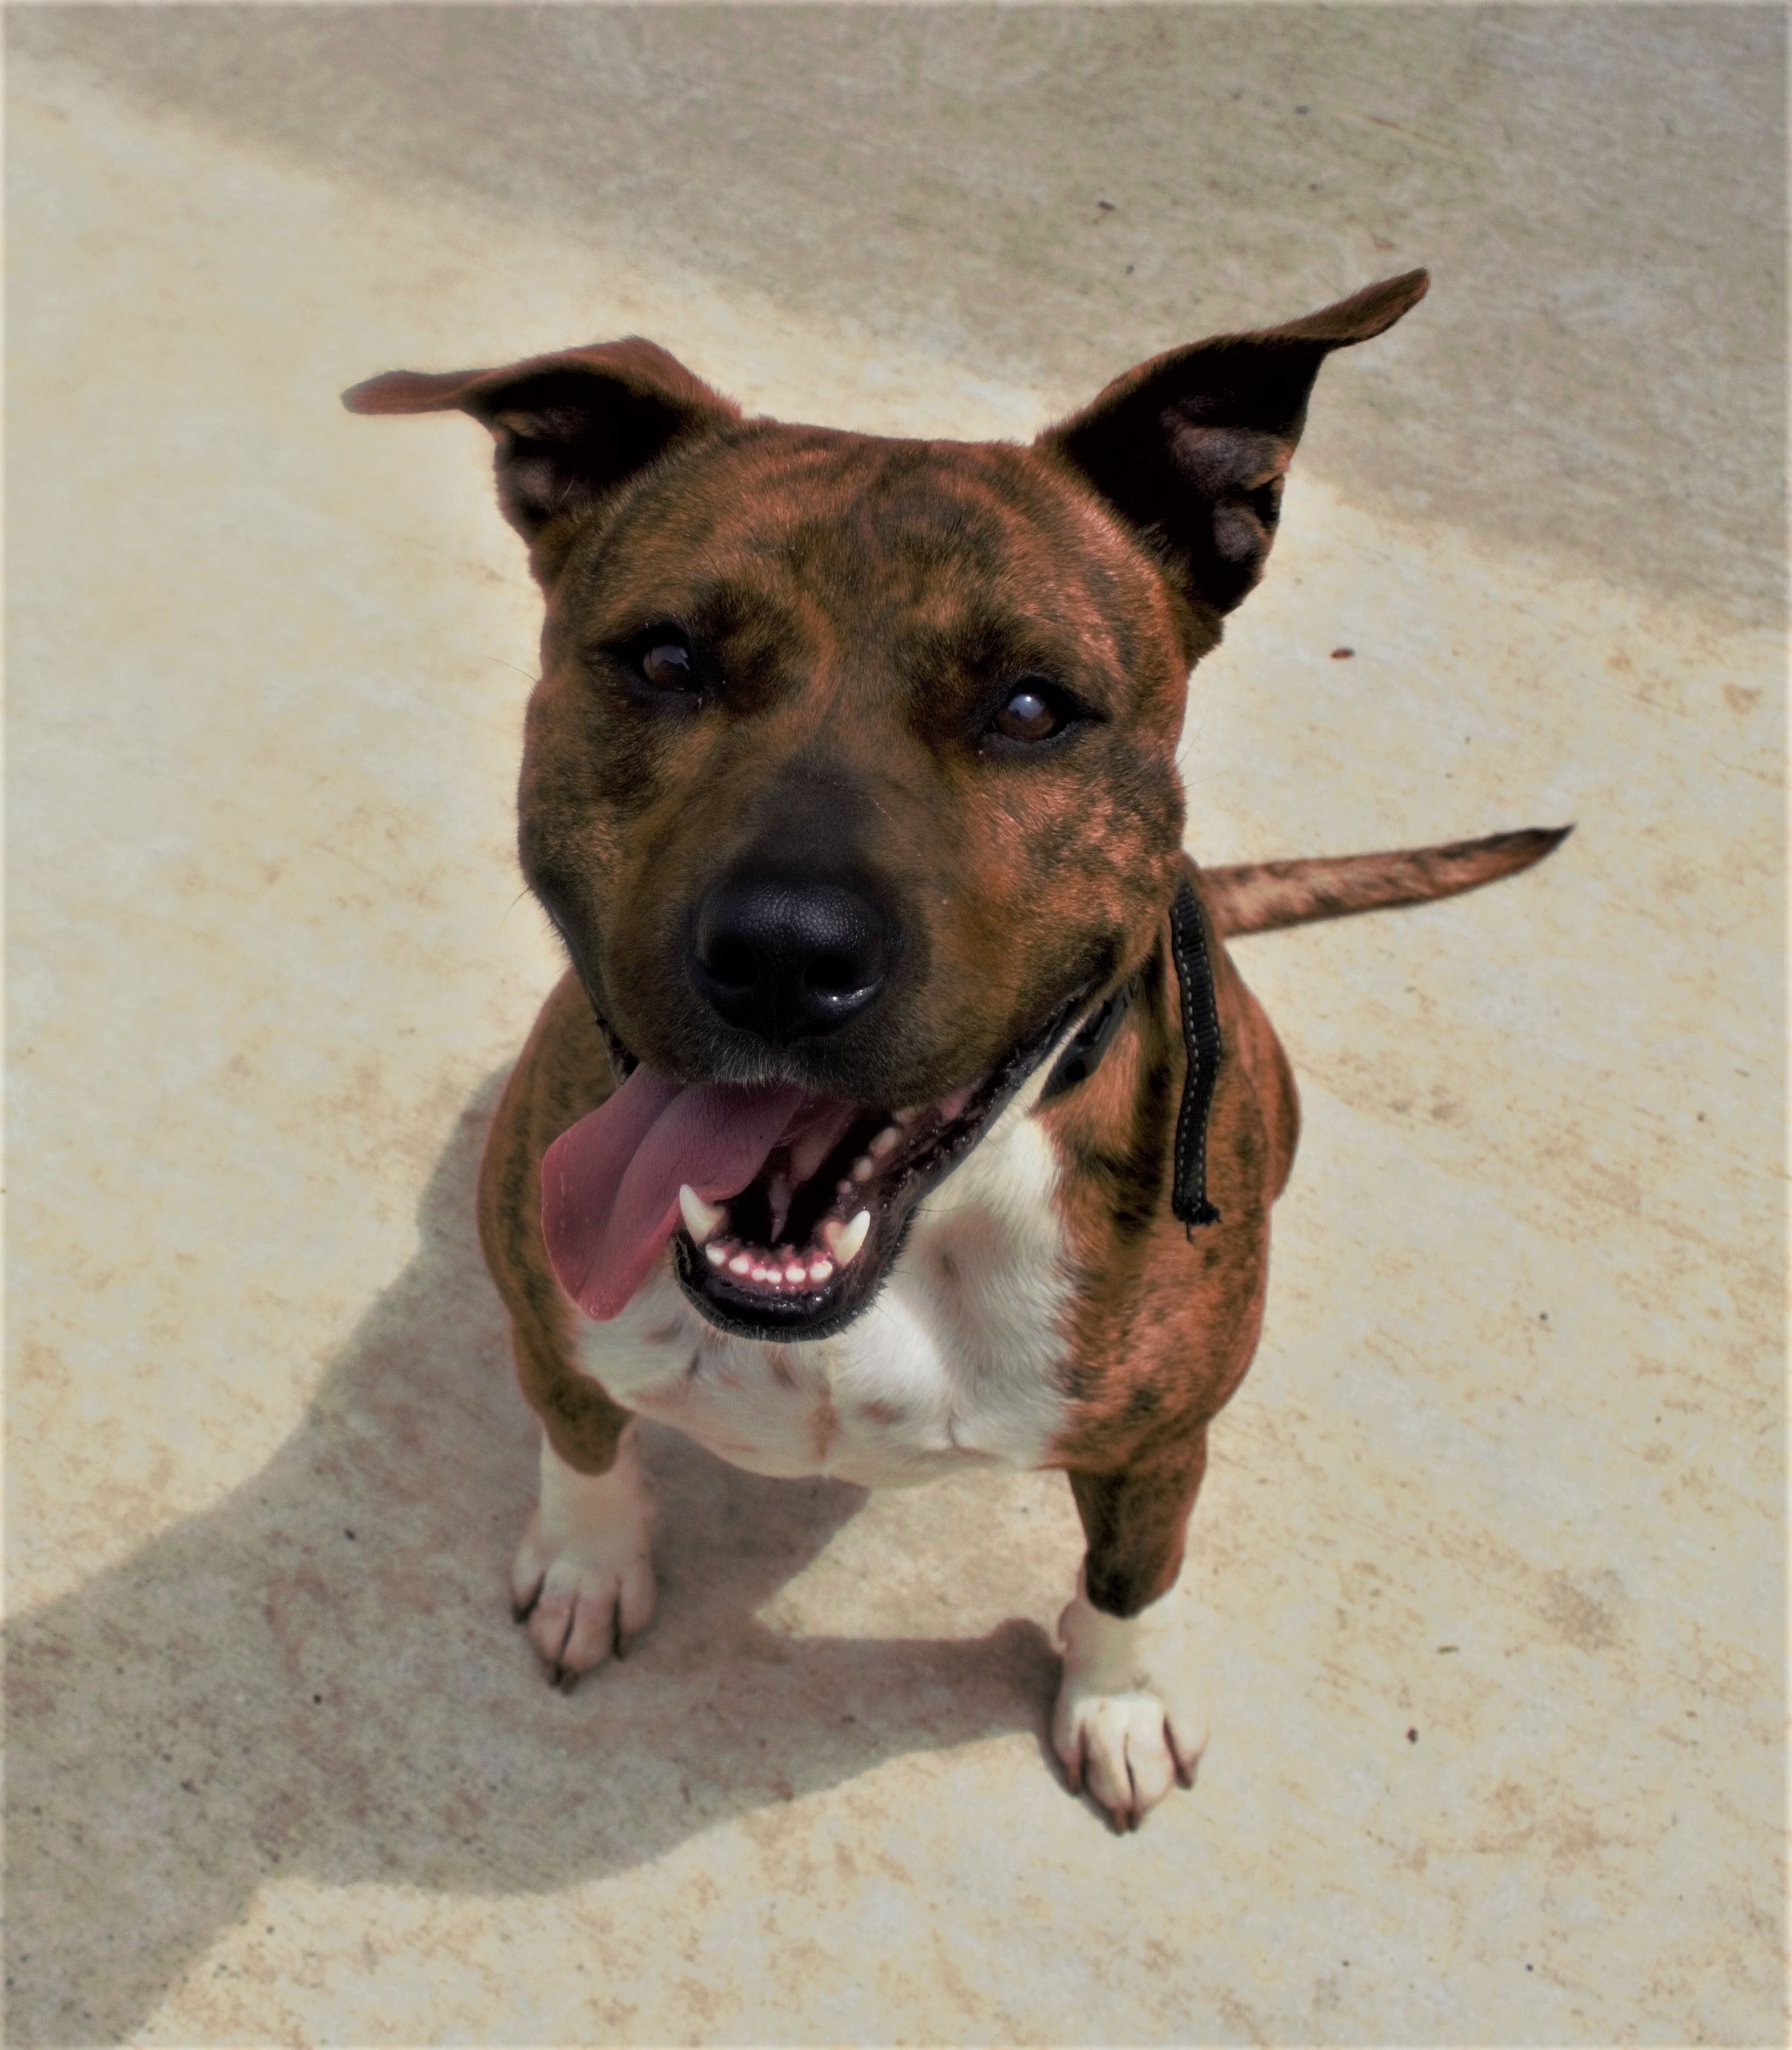 Porter is an adoptable american staffordshire terrier searching for a forever family near Lytle, TX. Use Petfinder to find adoptable pets in your area.